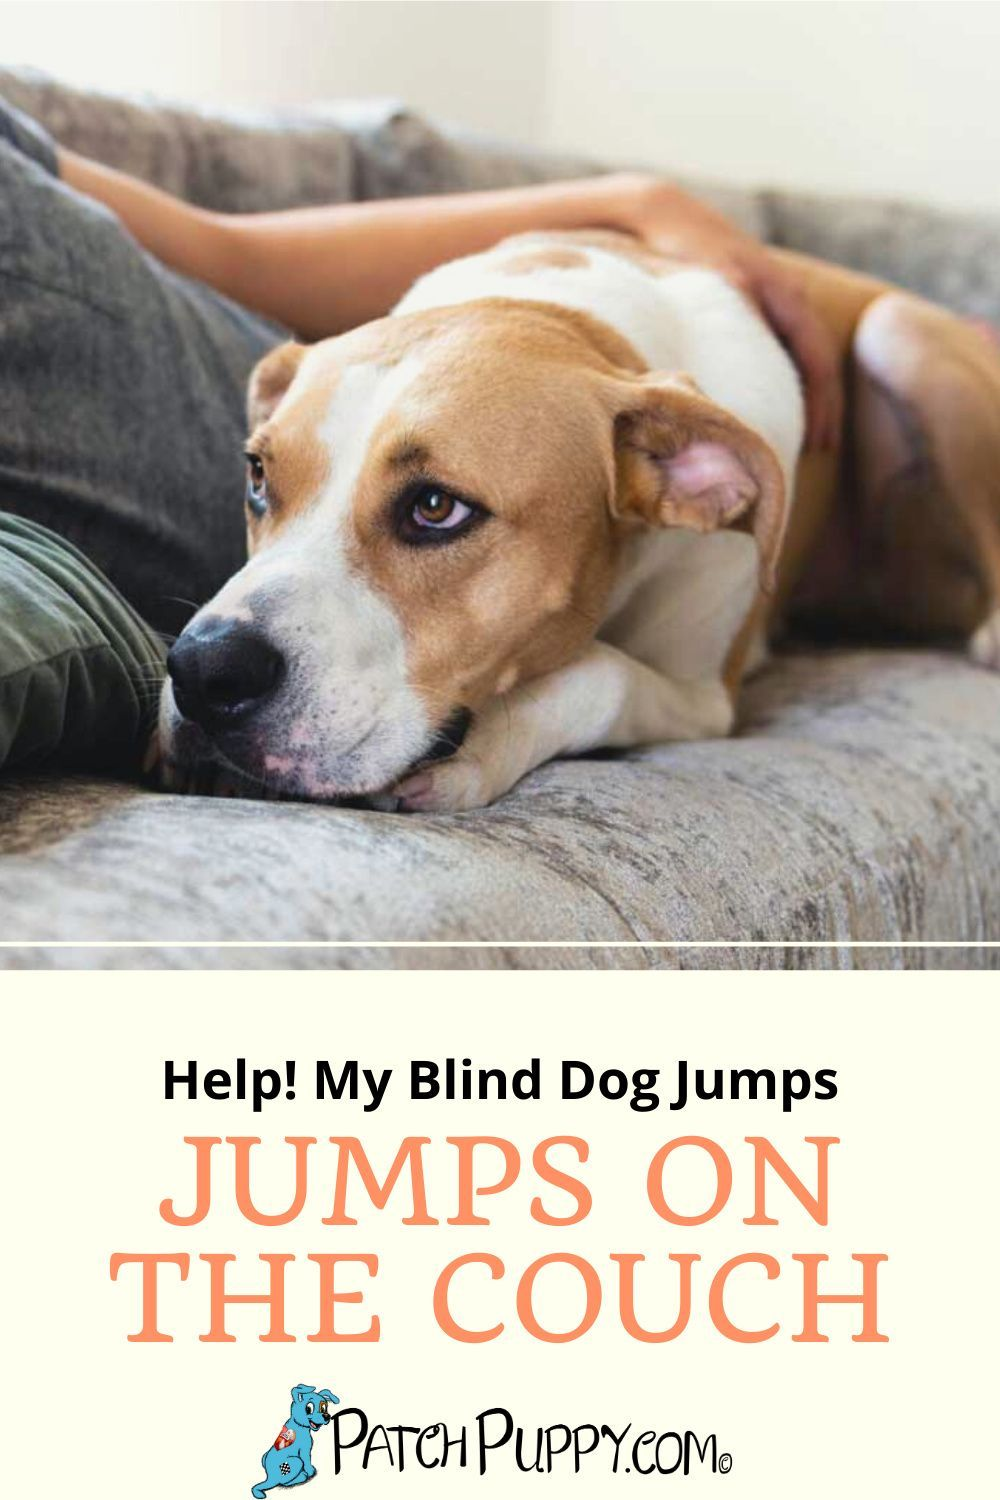 Blind Dog Jumps On Couch : blind, jumps, couch, Help!, Blind, Jumps, Couch, PatchPuppy.com, Dogs,, Training